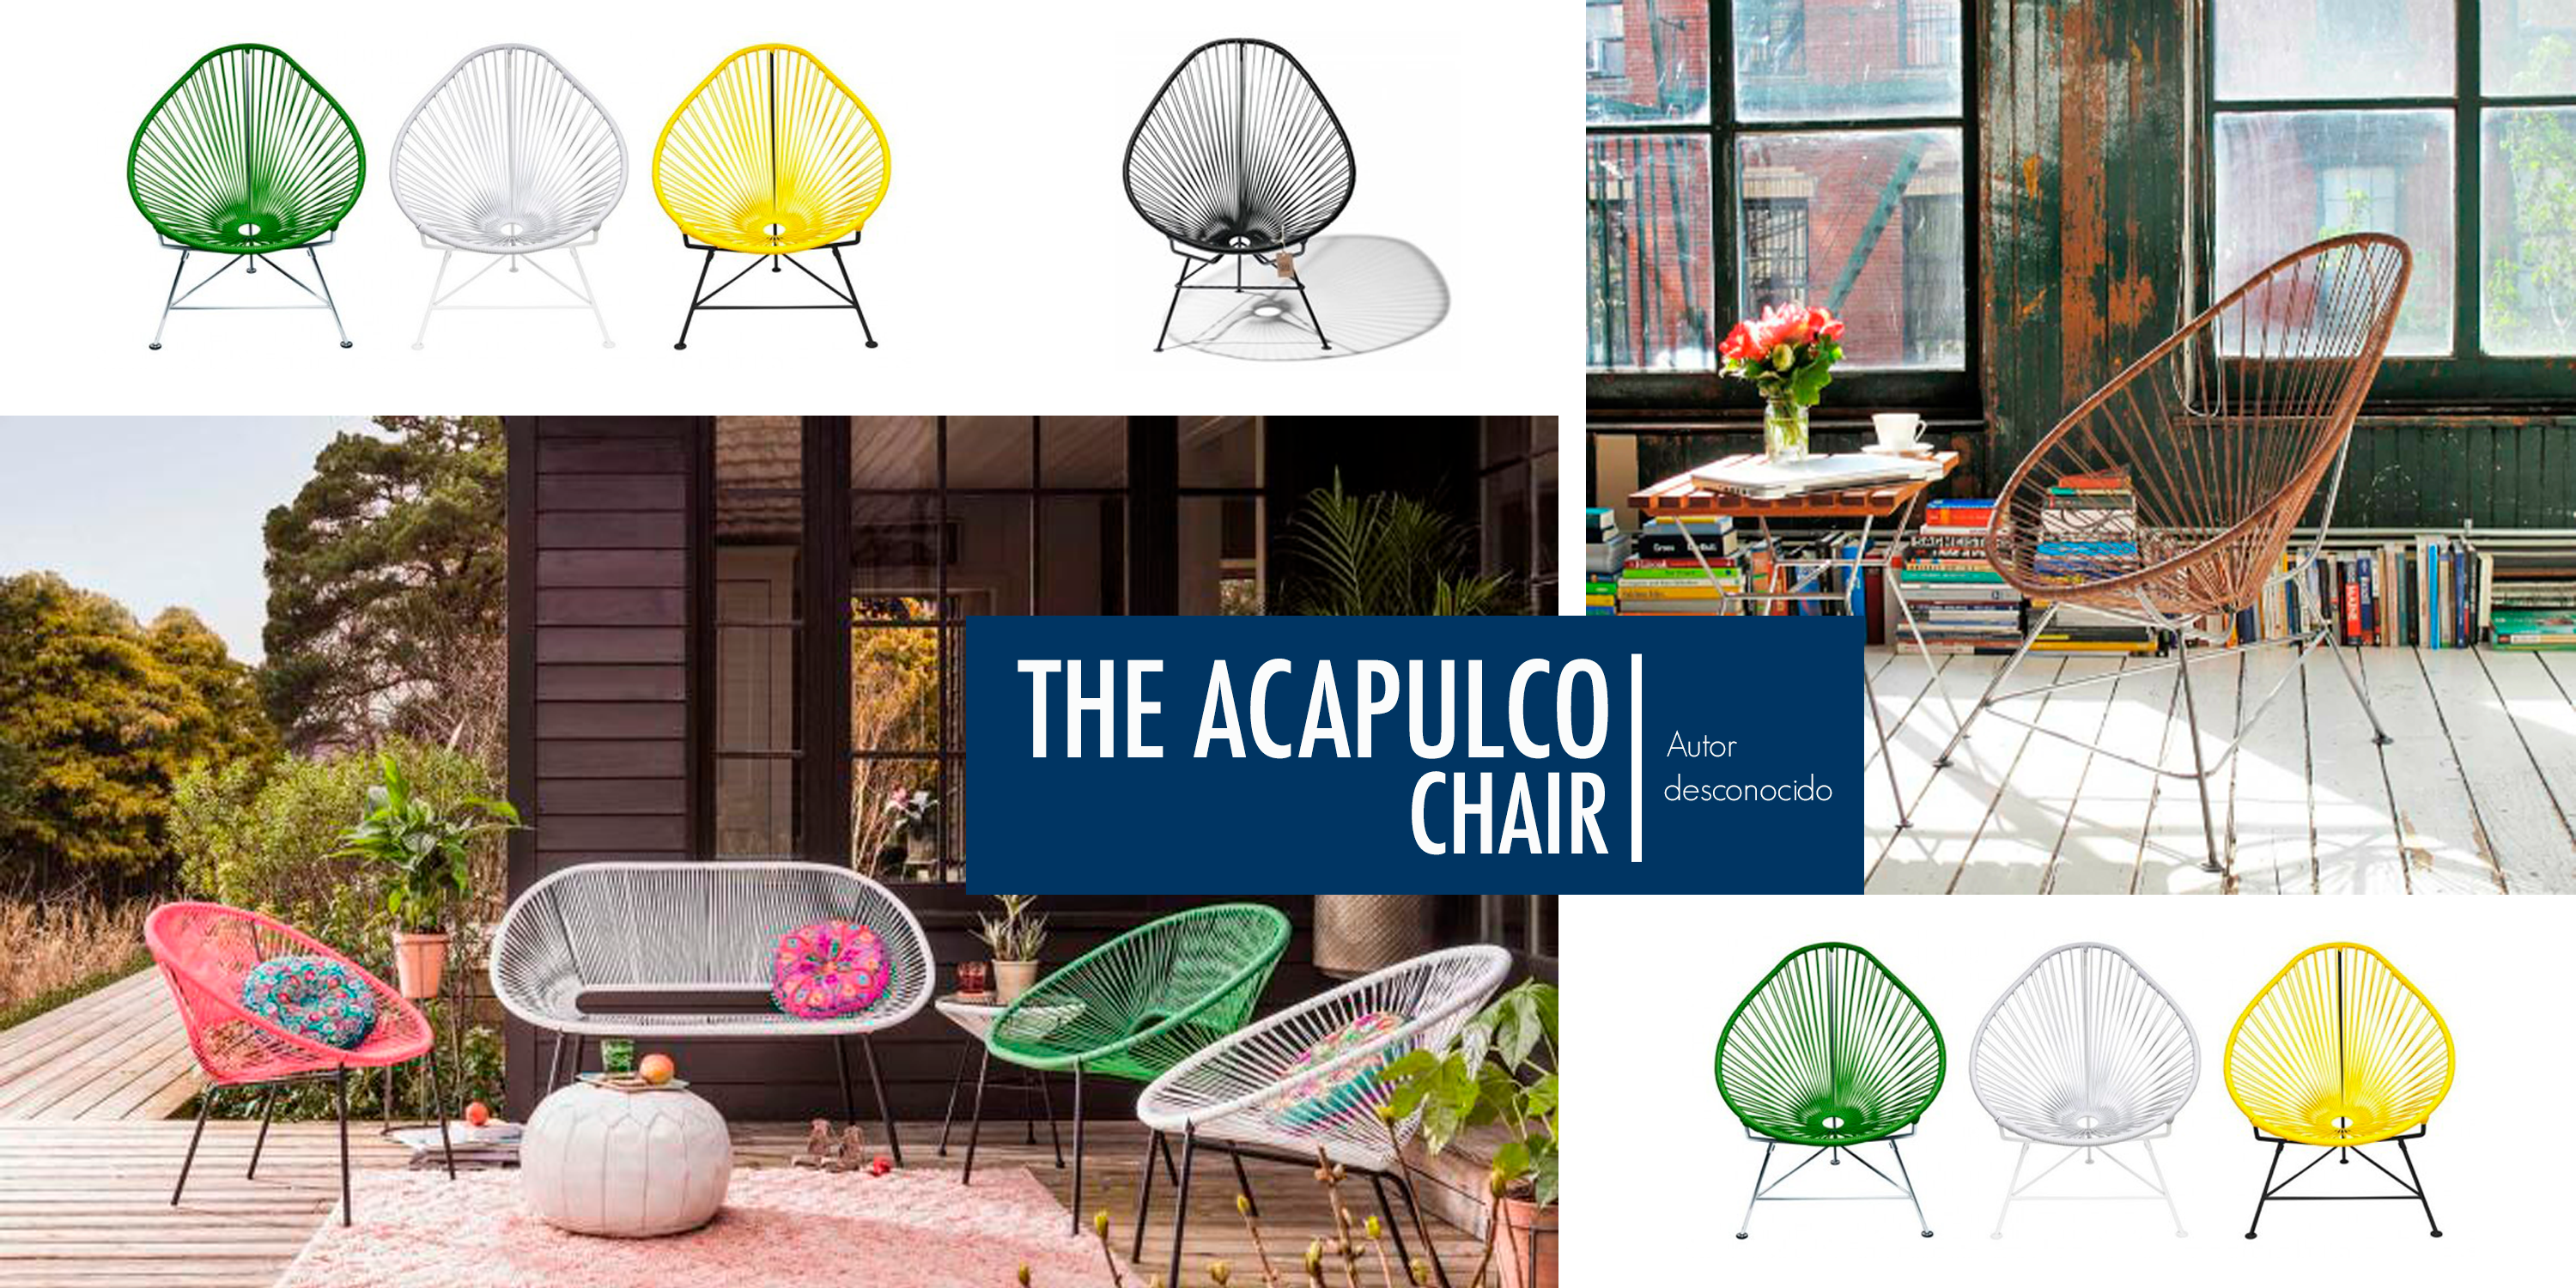 ``The Acapulco Chair``